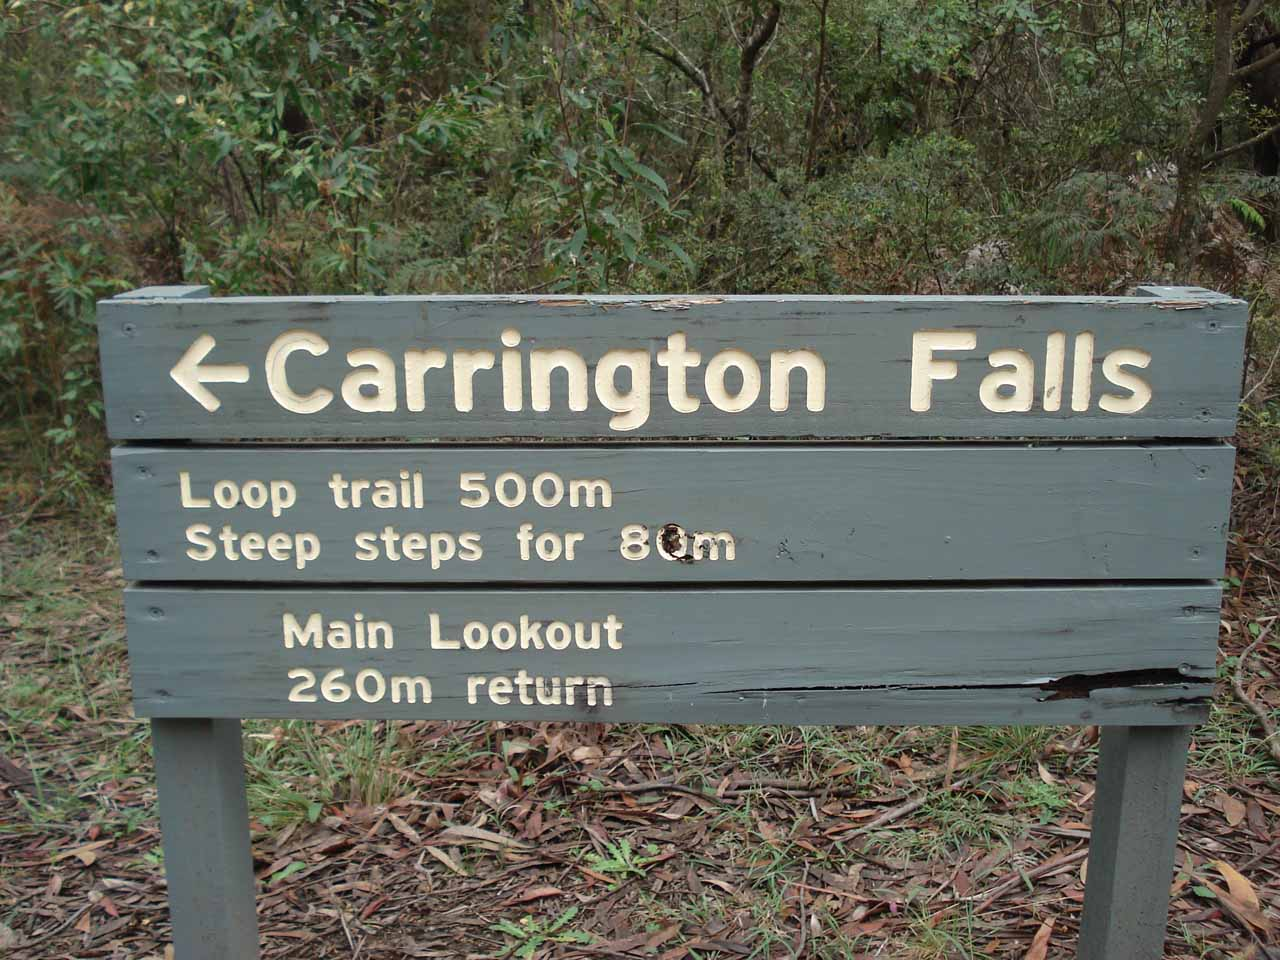 Sign at the start of the walking tracks telling us what was necessary to experience Carrington Falls